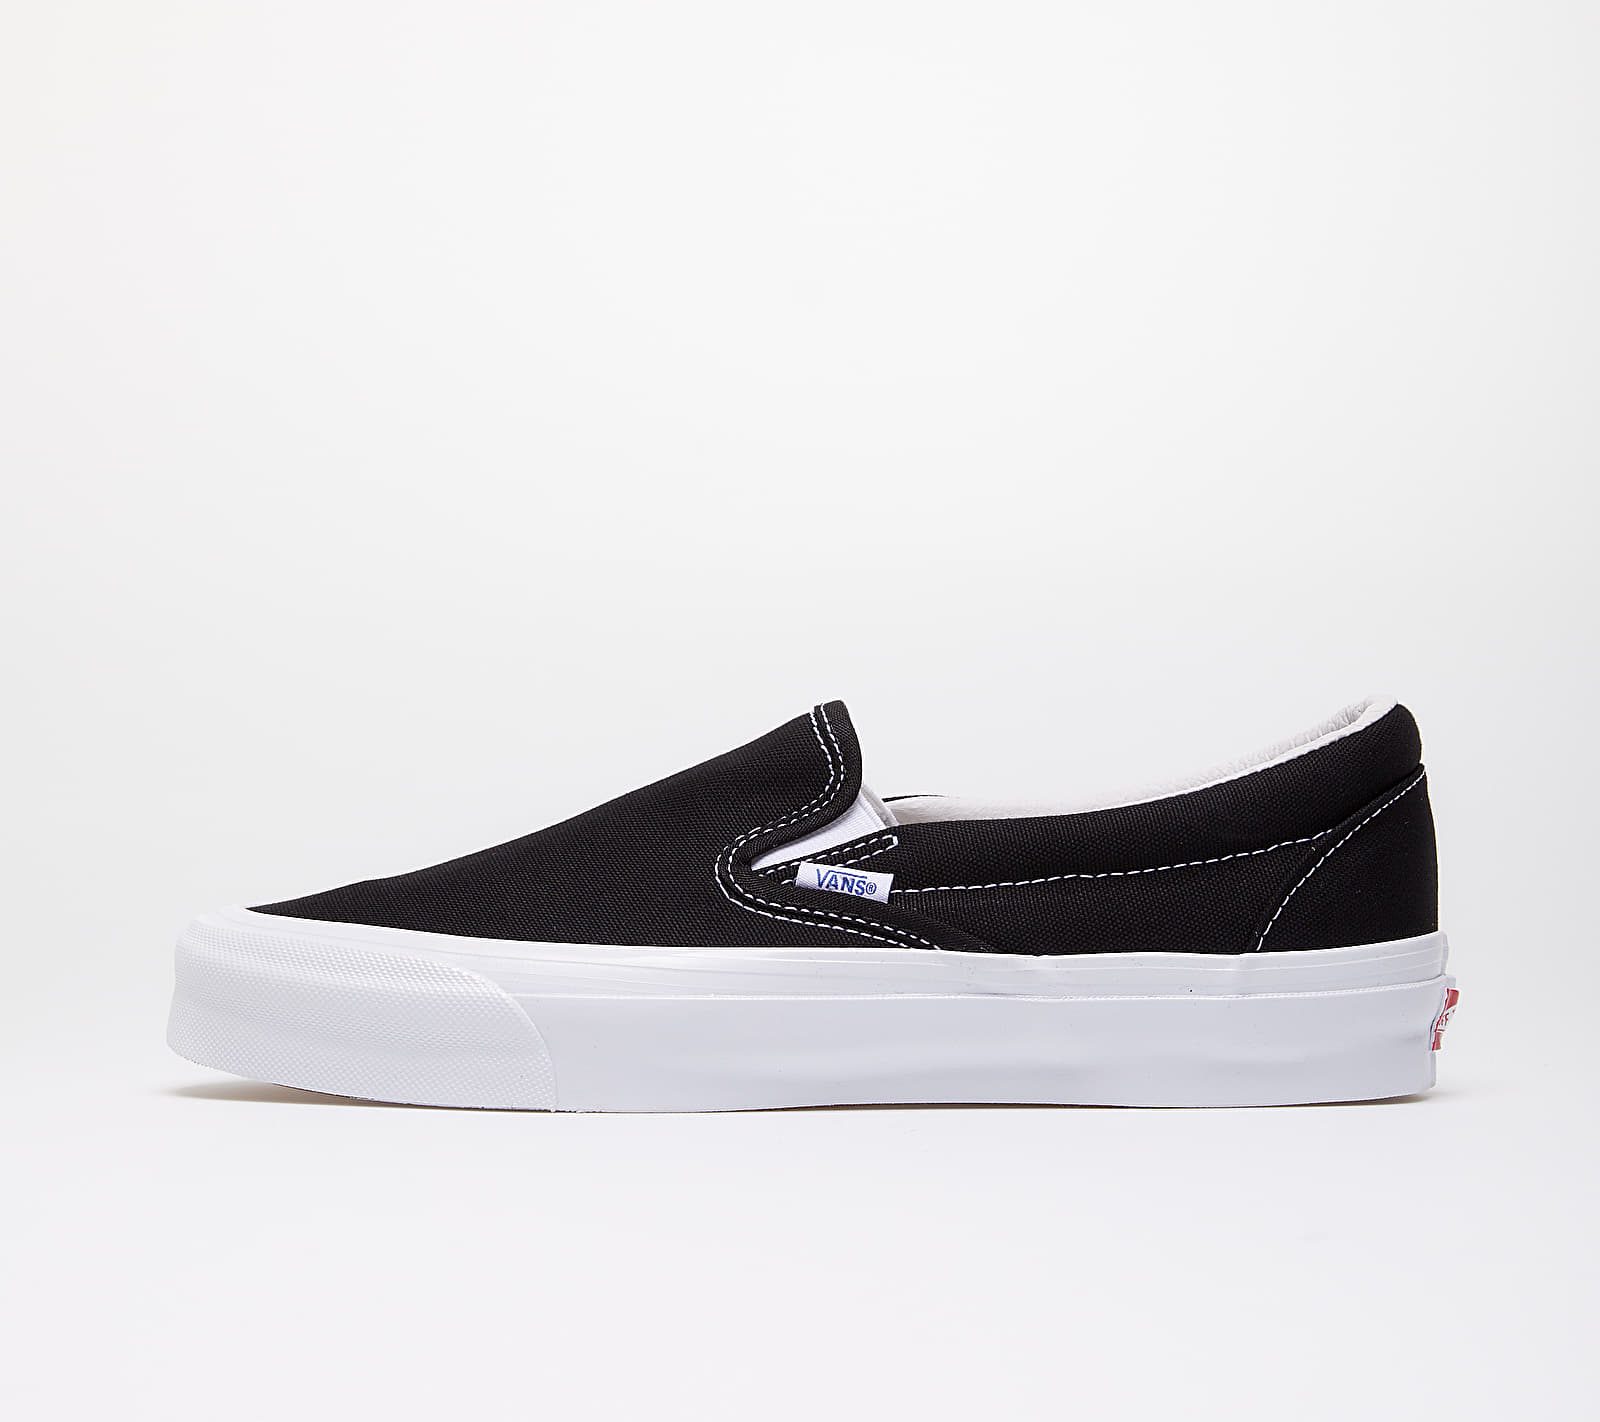 Vans OG Classic Slip-On (Canvas) Black/ True White EUR 40.5